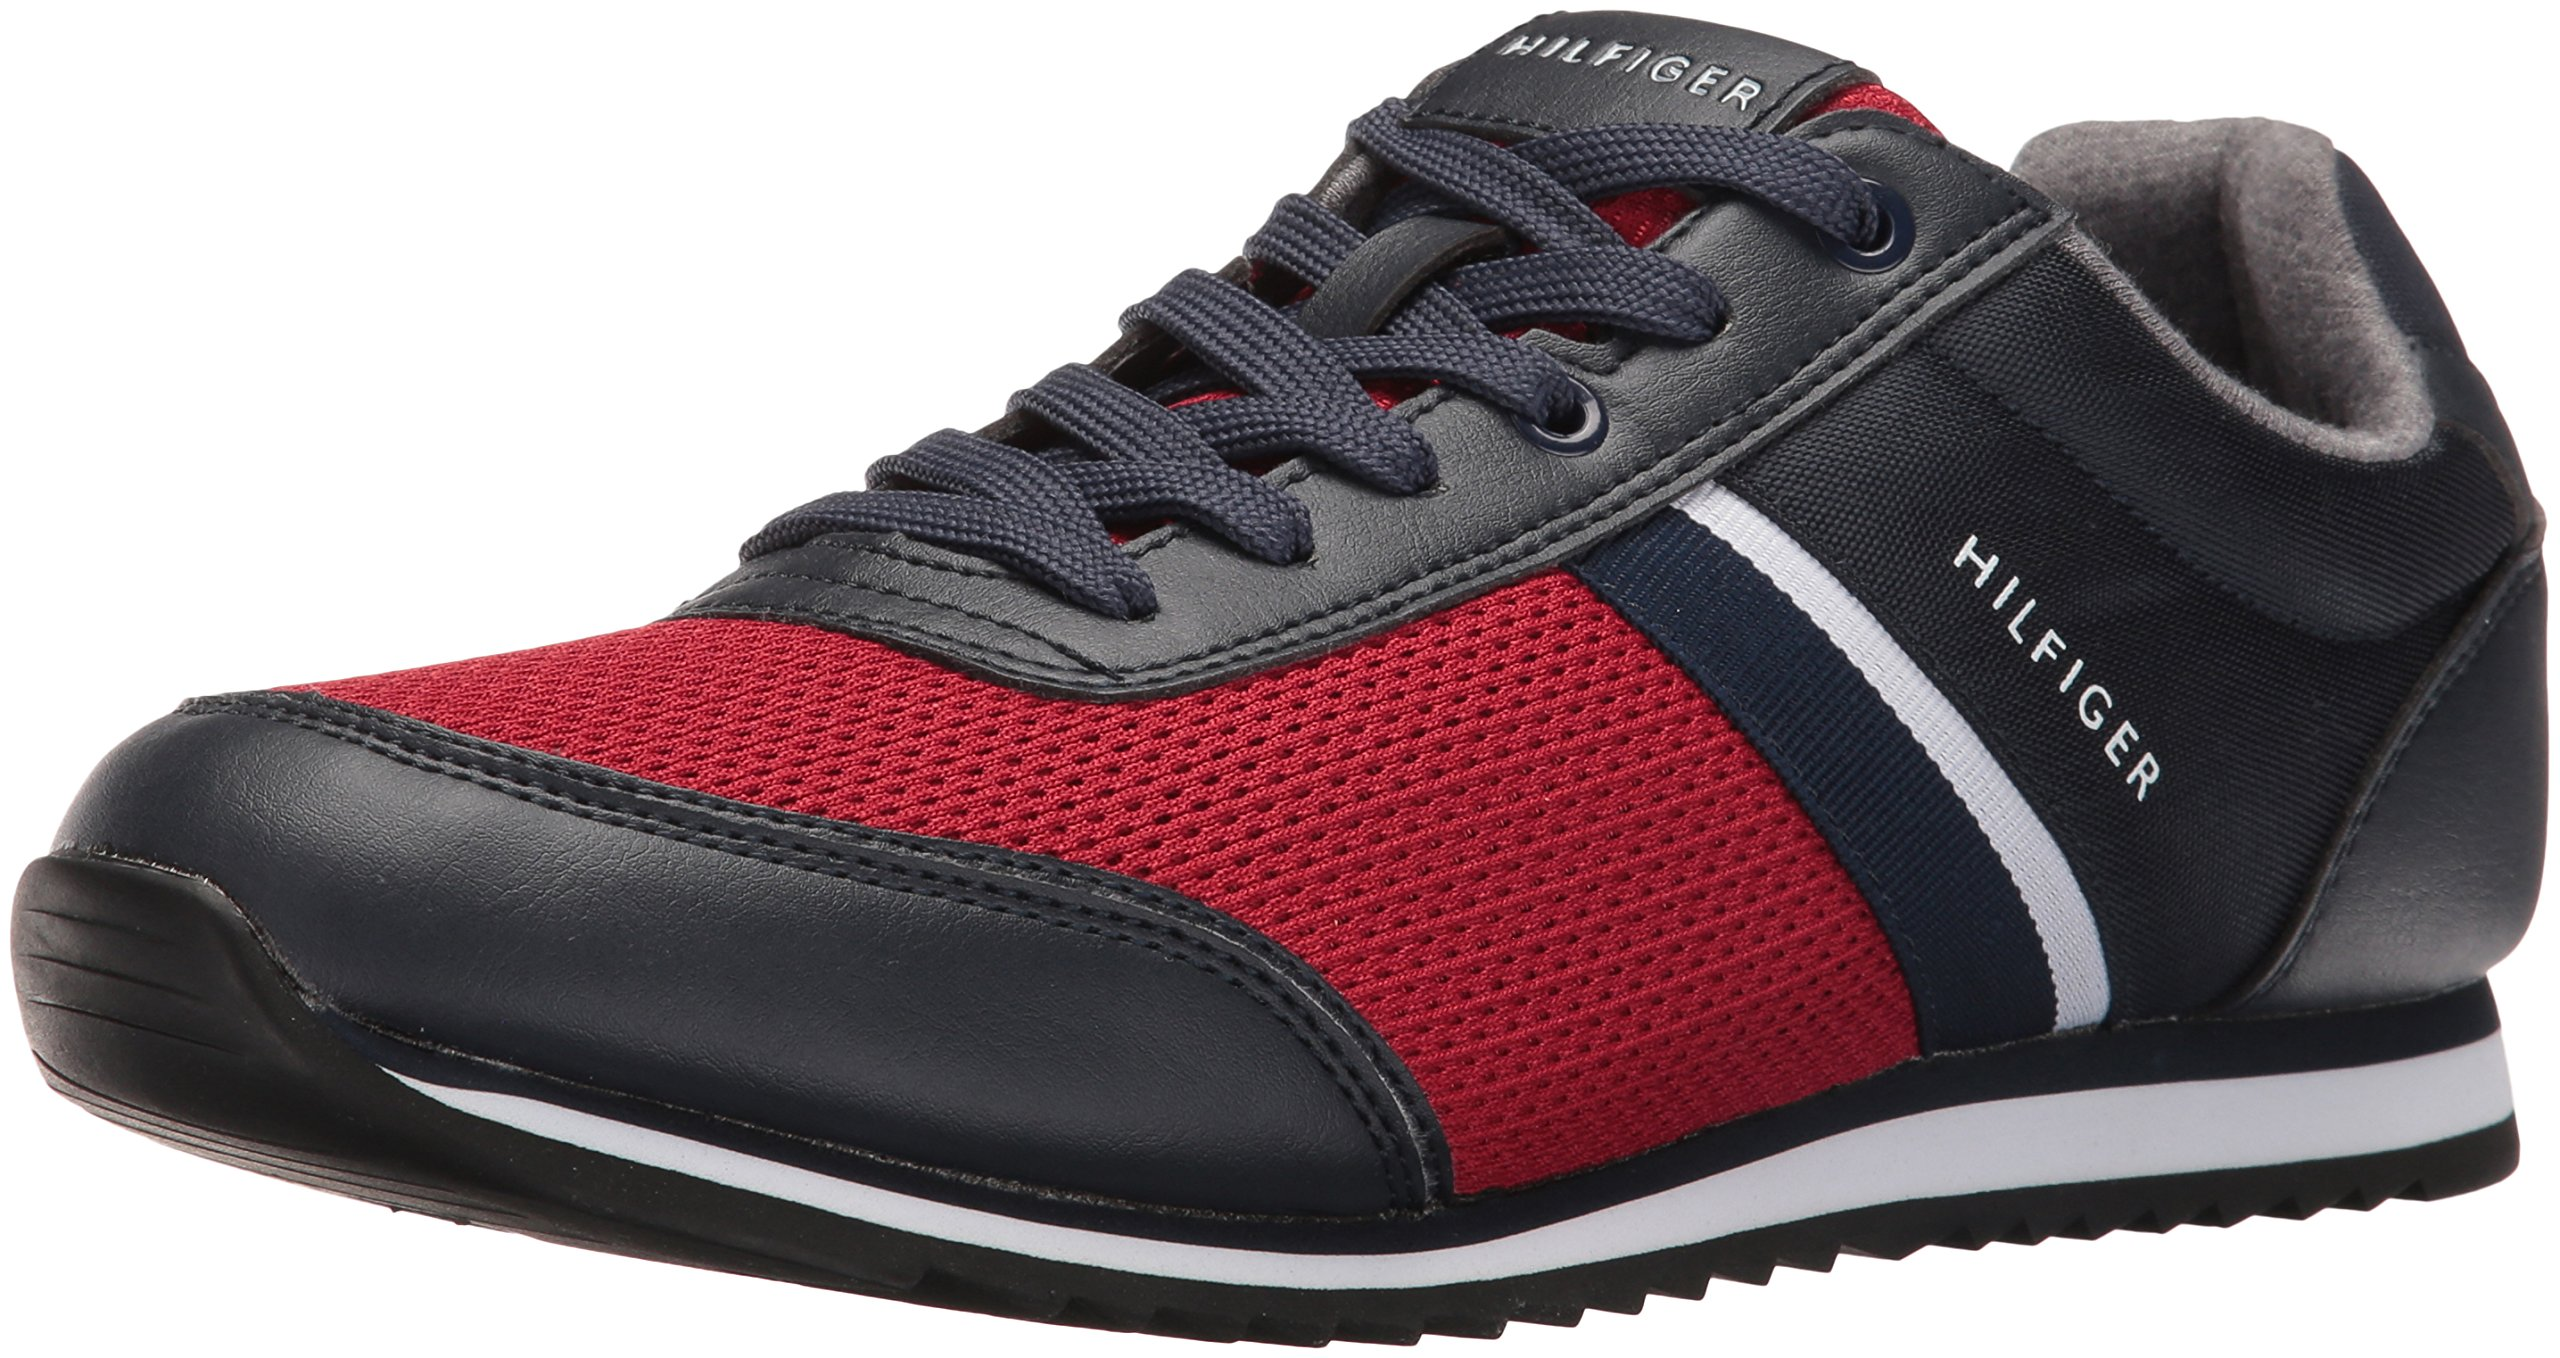 676a5f4a575f Galleon - Tommy Hilfiger Men s Fallon Fashion Sneaker